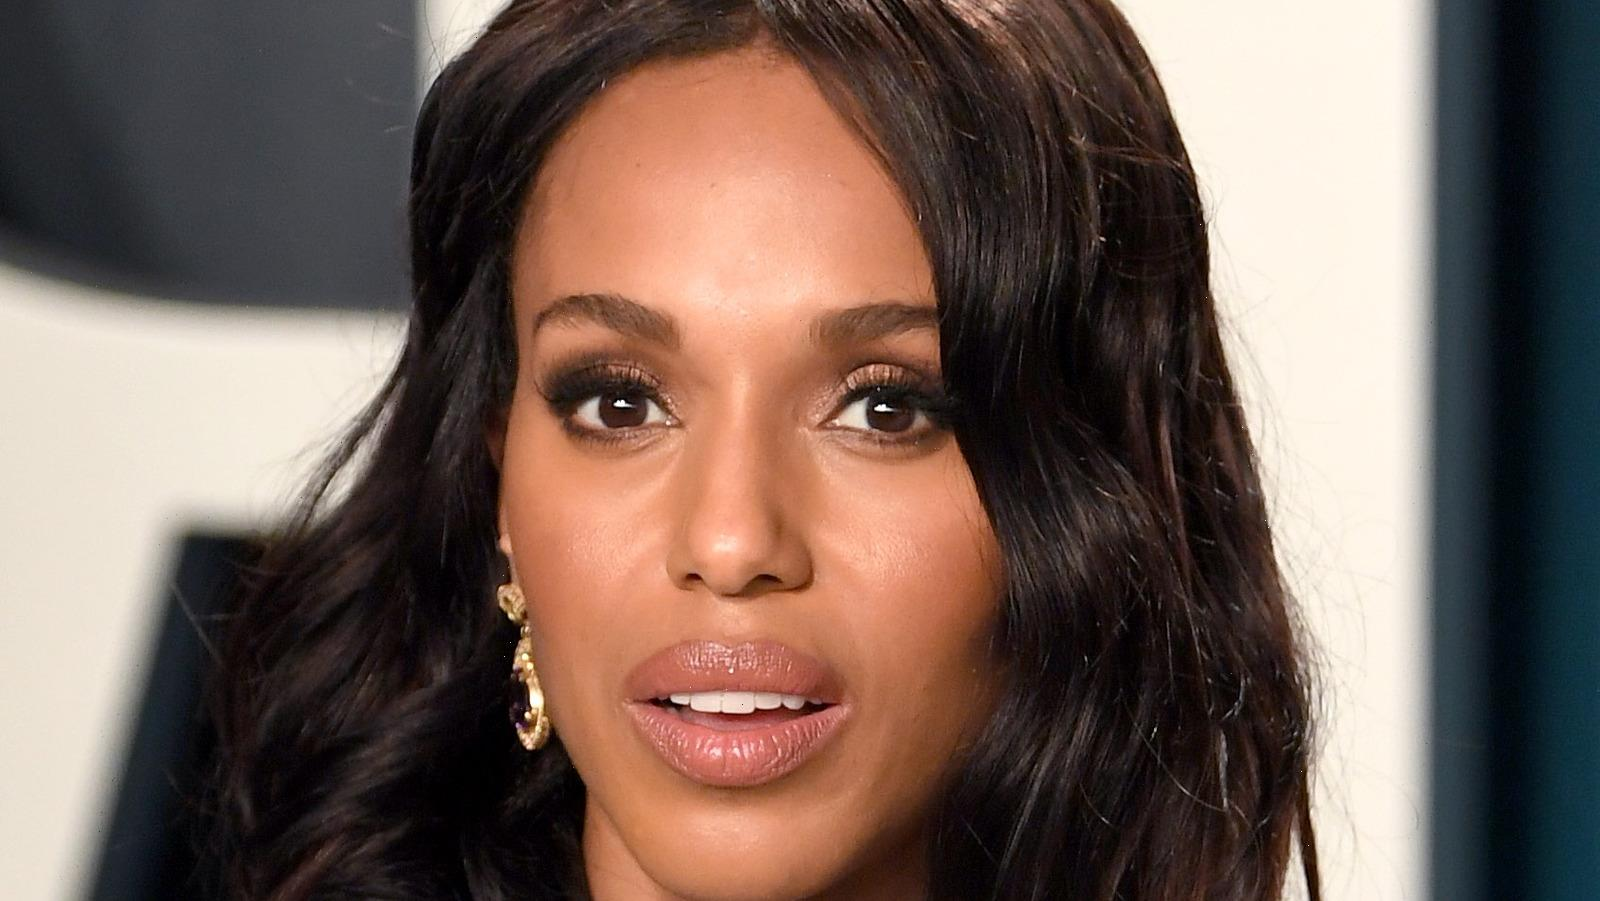 The Exact Beauty Products Kerry Washington Wore As Olivia Pope On Scandal